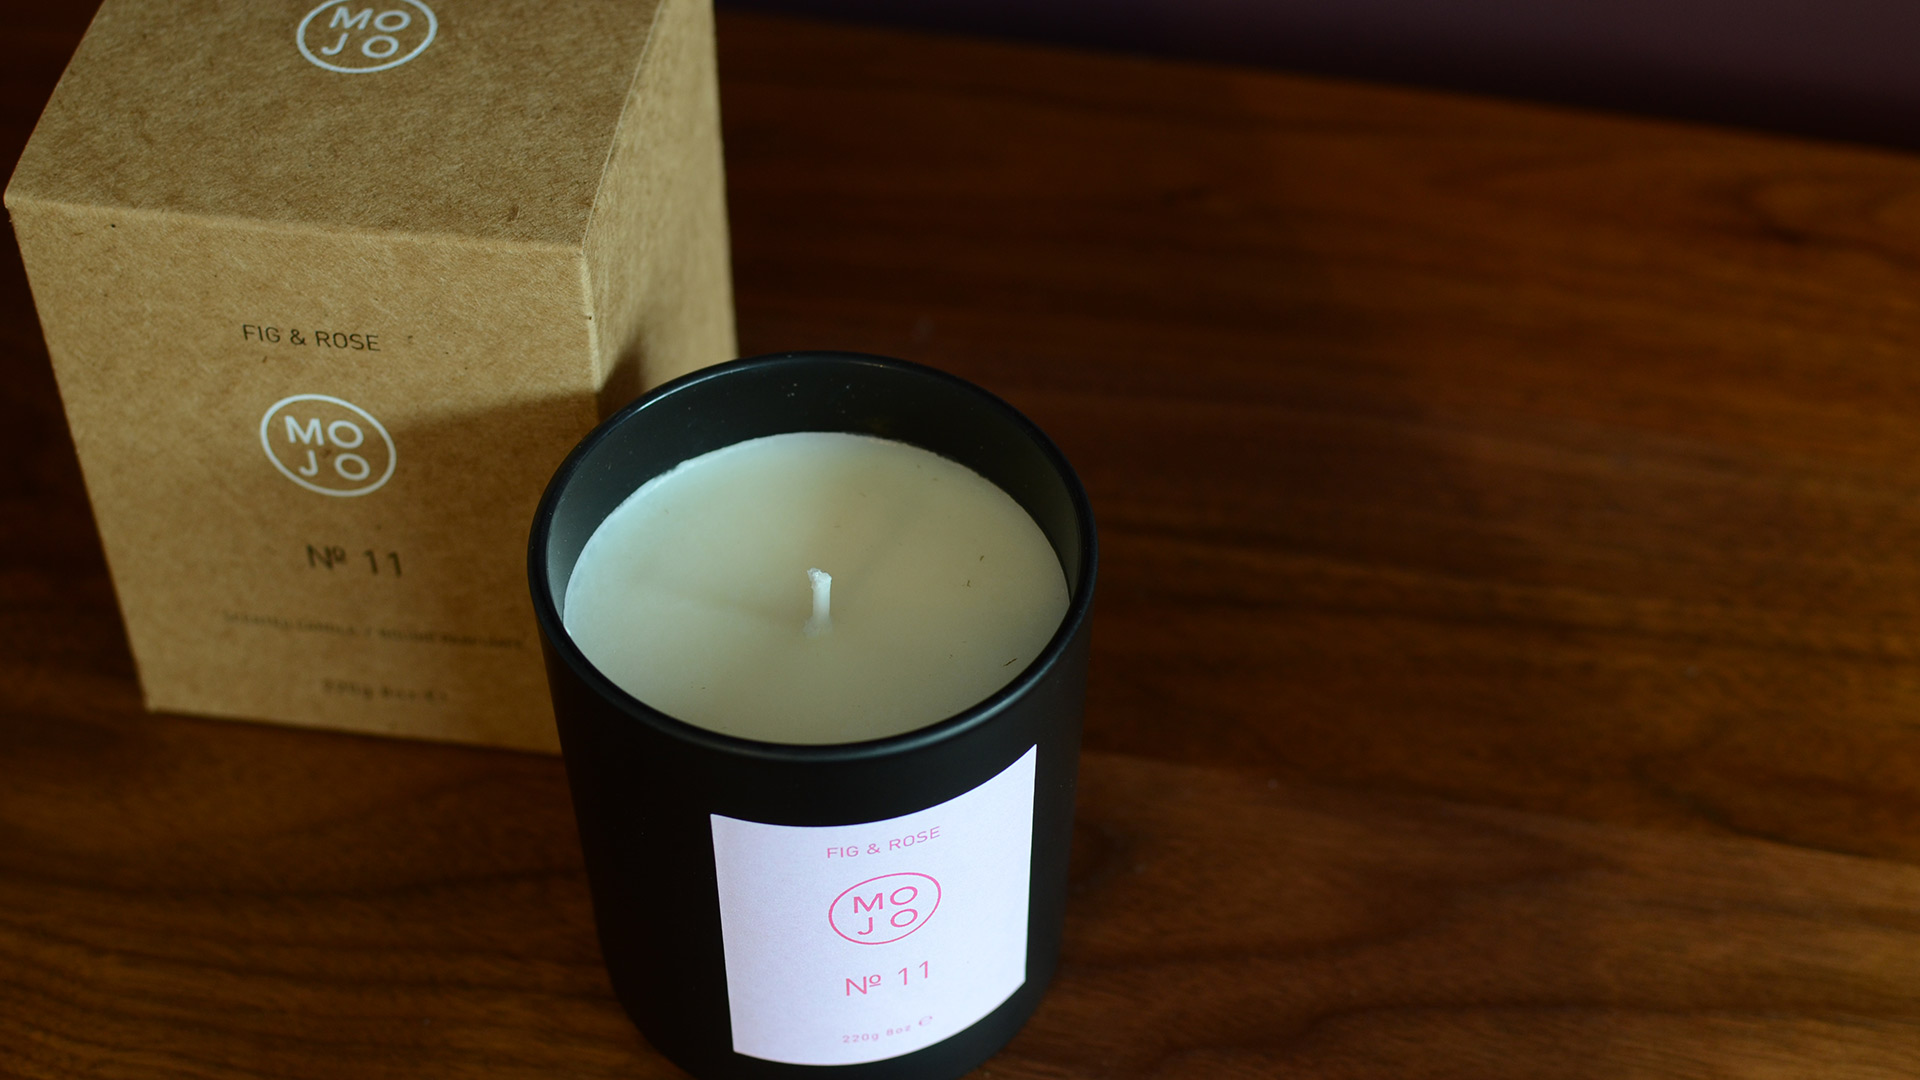 fig-&-rose-2-mojo-scented-candle